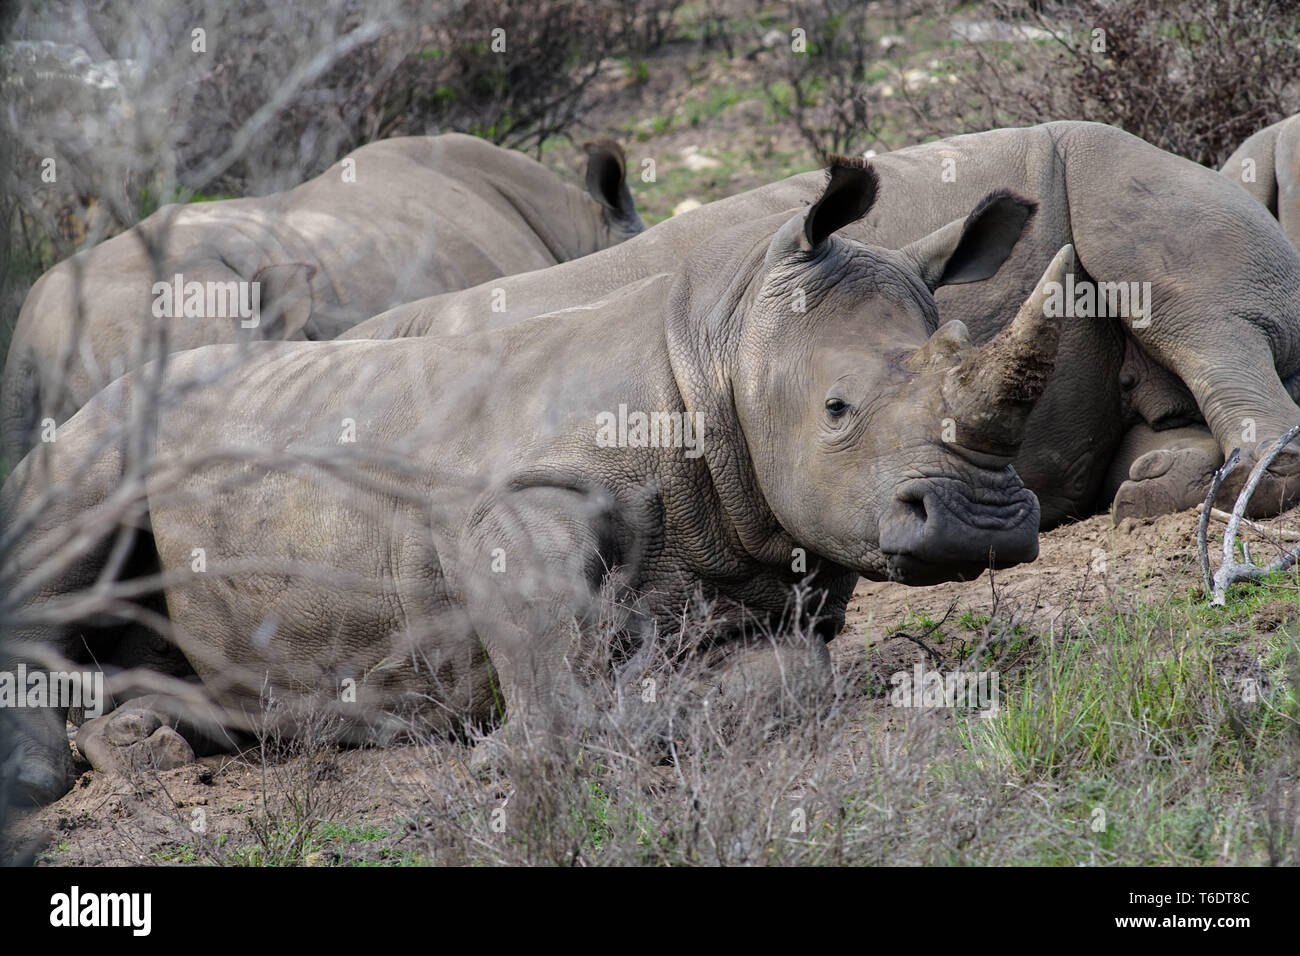 Rhino family in South Africa, Garden Route - Stock Image